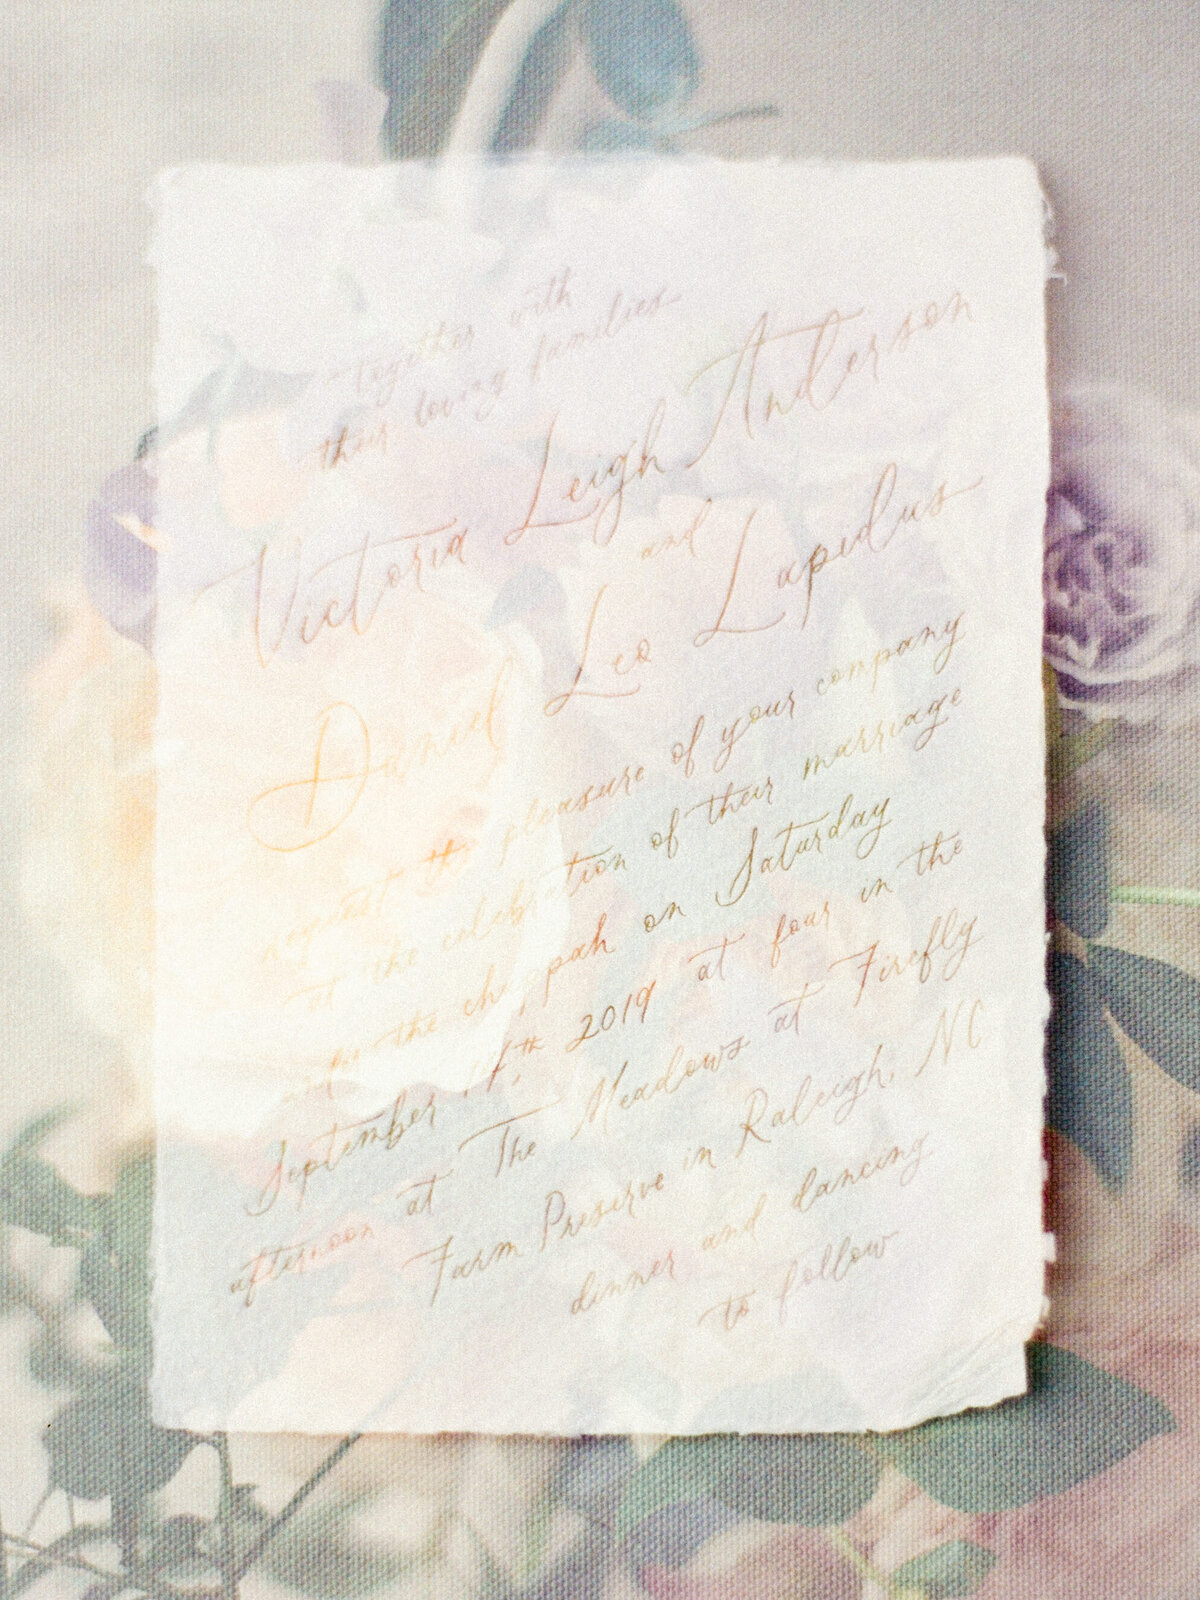 Beautiful love letter